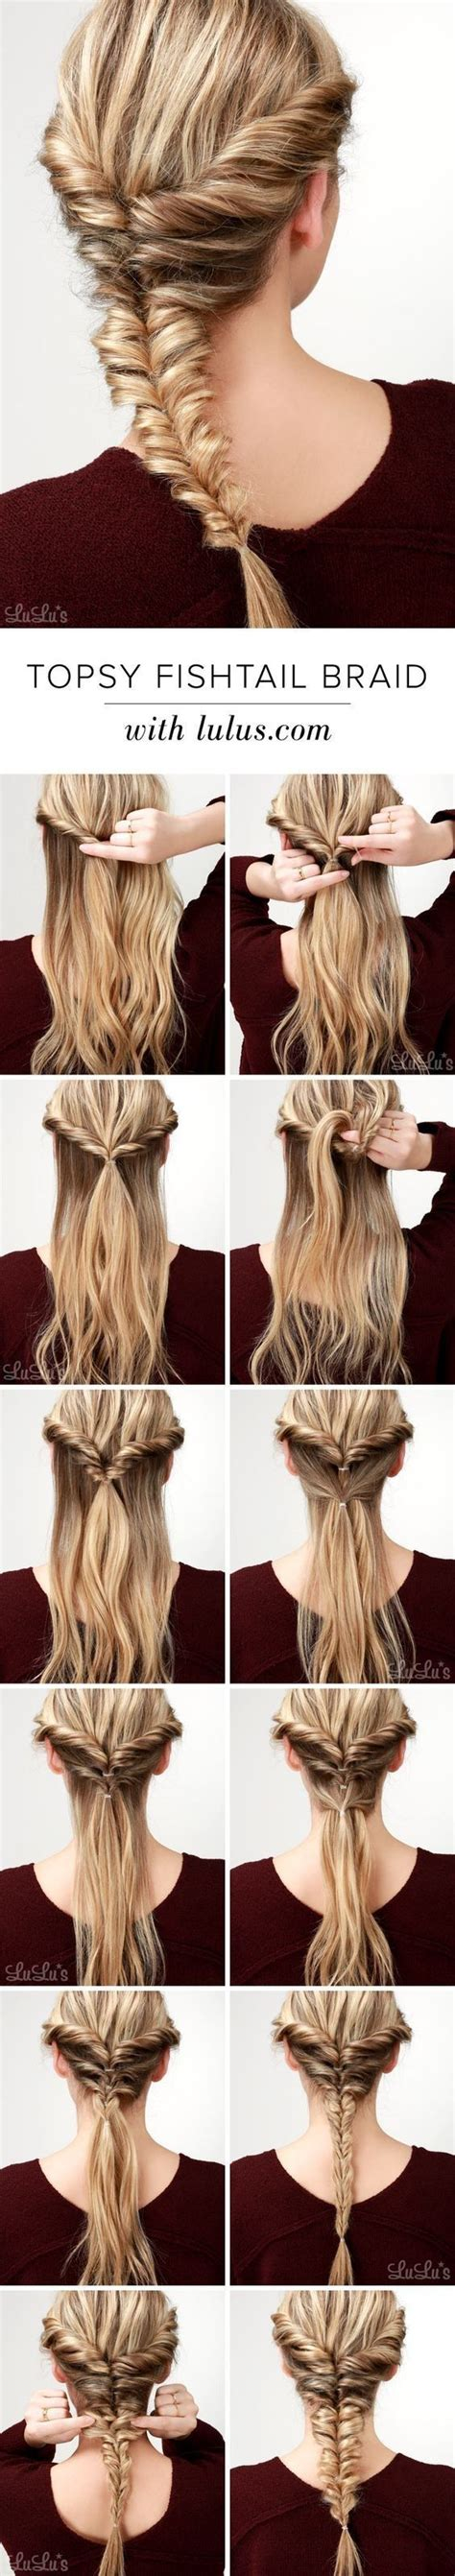 hairstyles for lazy women best 25 cute braided hairstyles ideas on pinterest cute